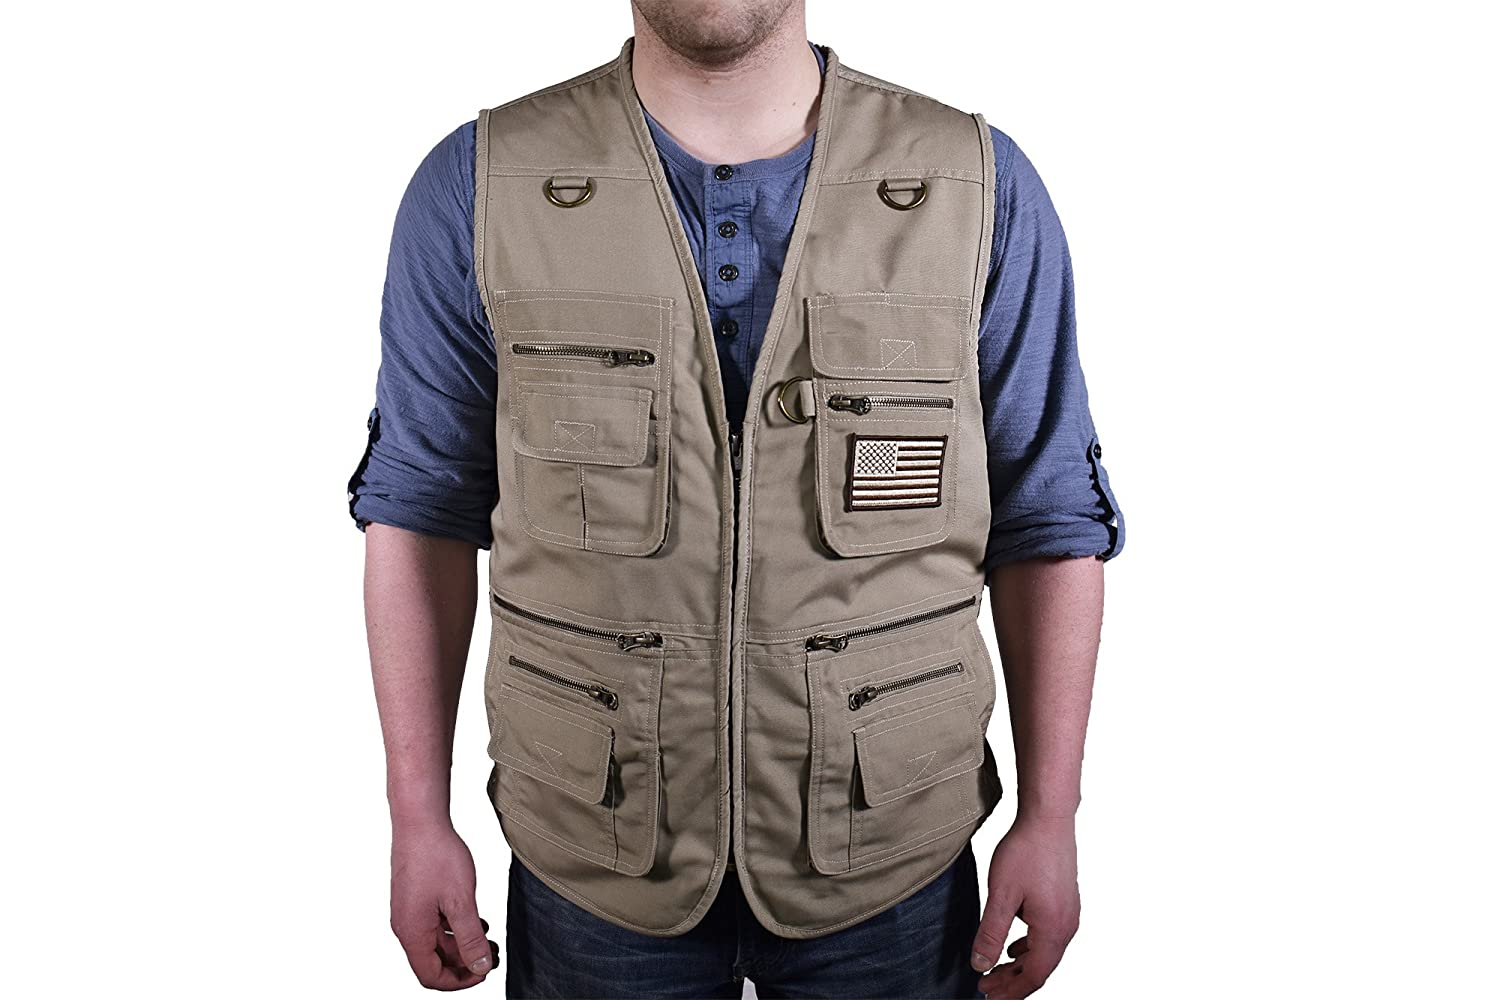 BLUESTONE Concealment Vest C567-TAN-2XL-P